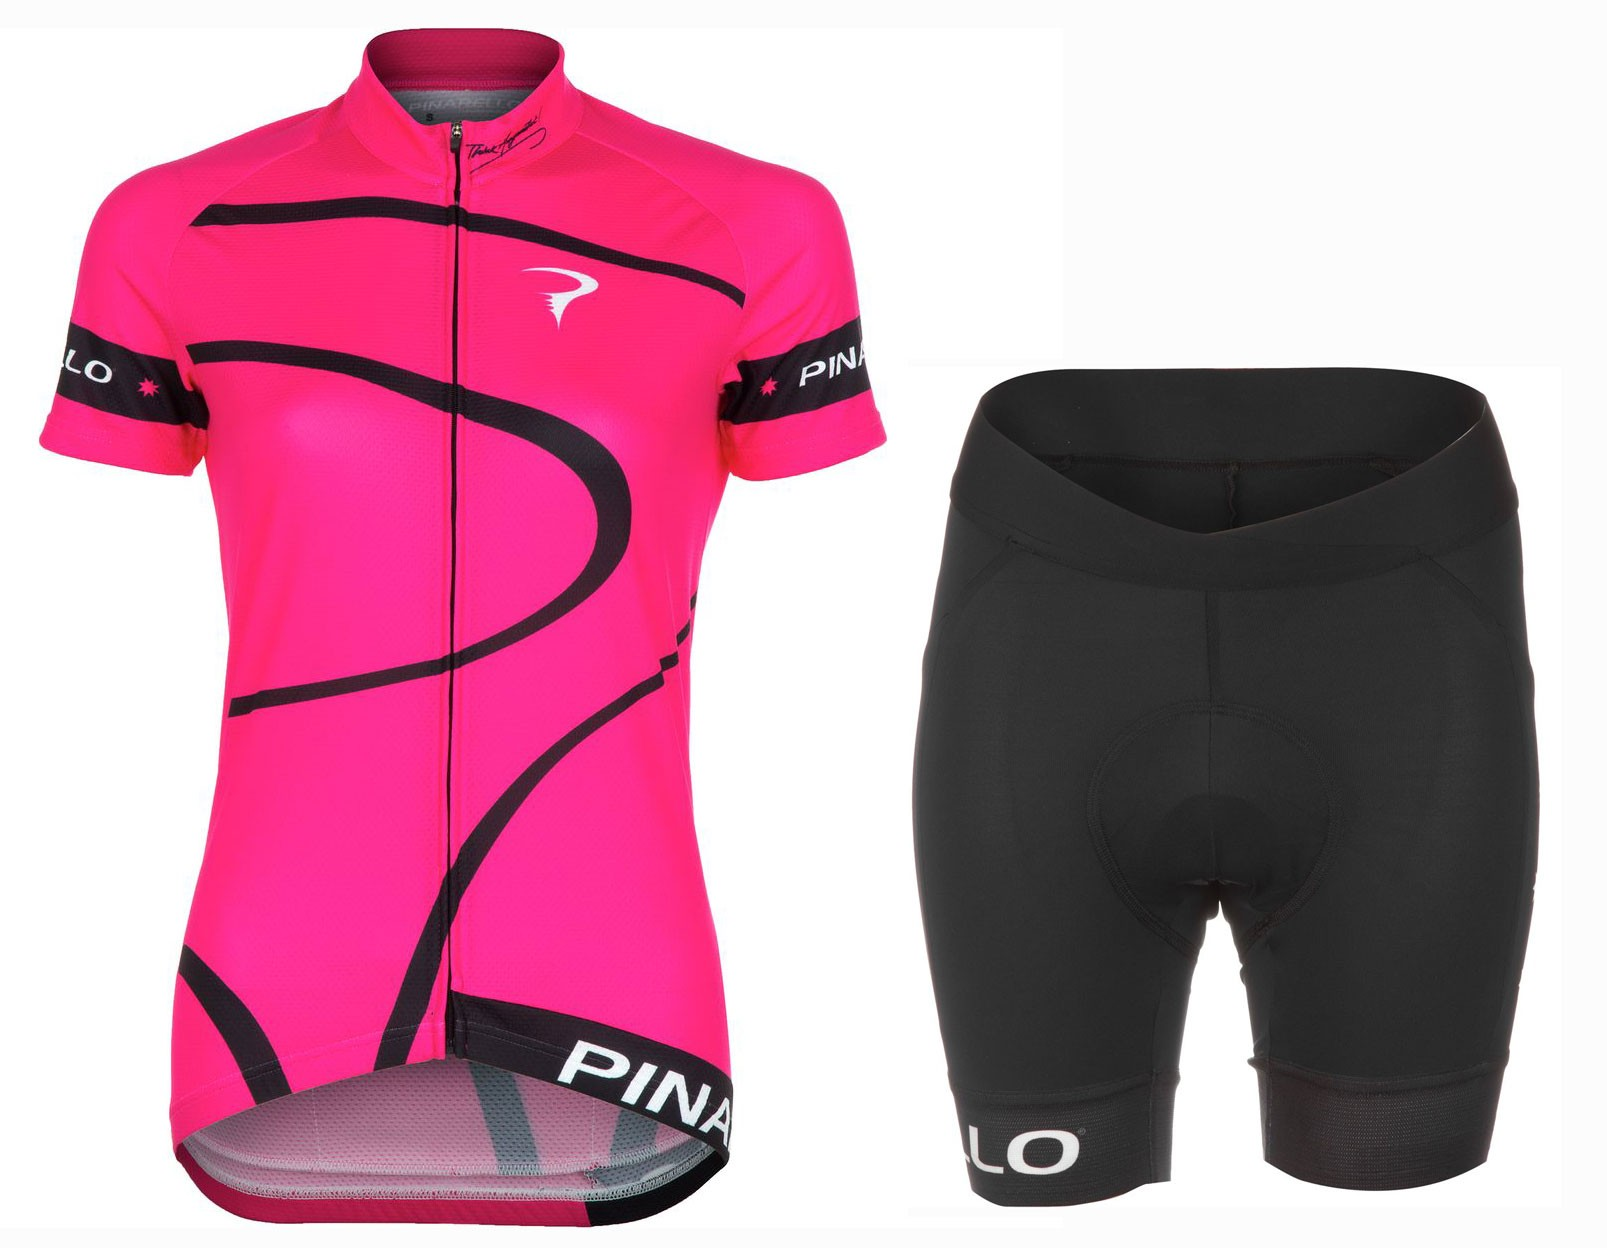 2016 Pinarello MIRA Pink Women Cycling Jersey And Regular Shorts Set e986363a9